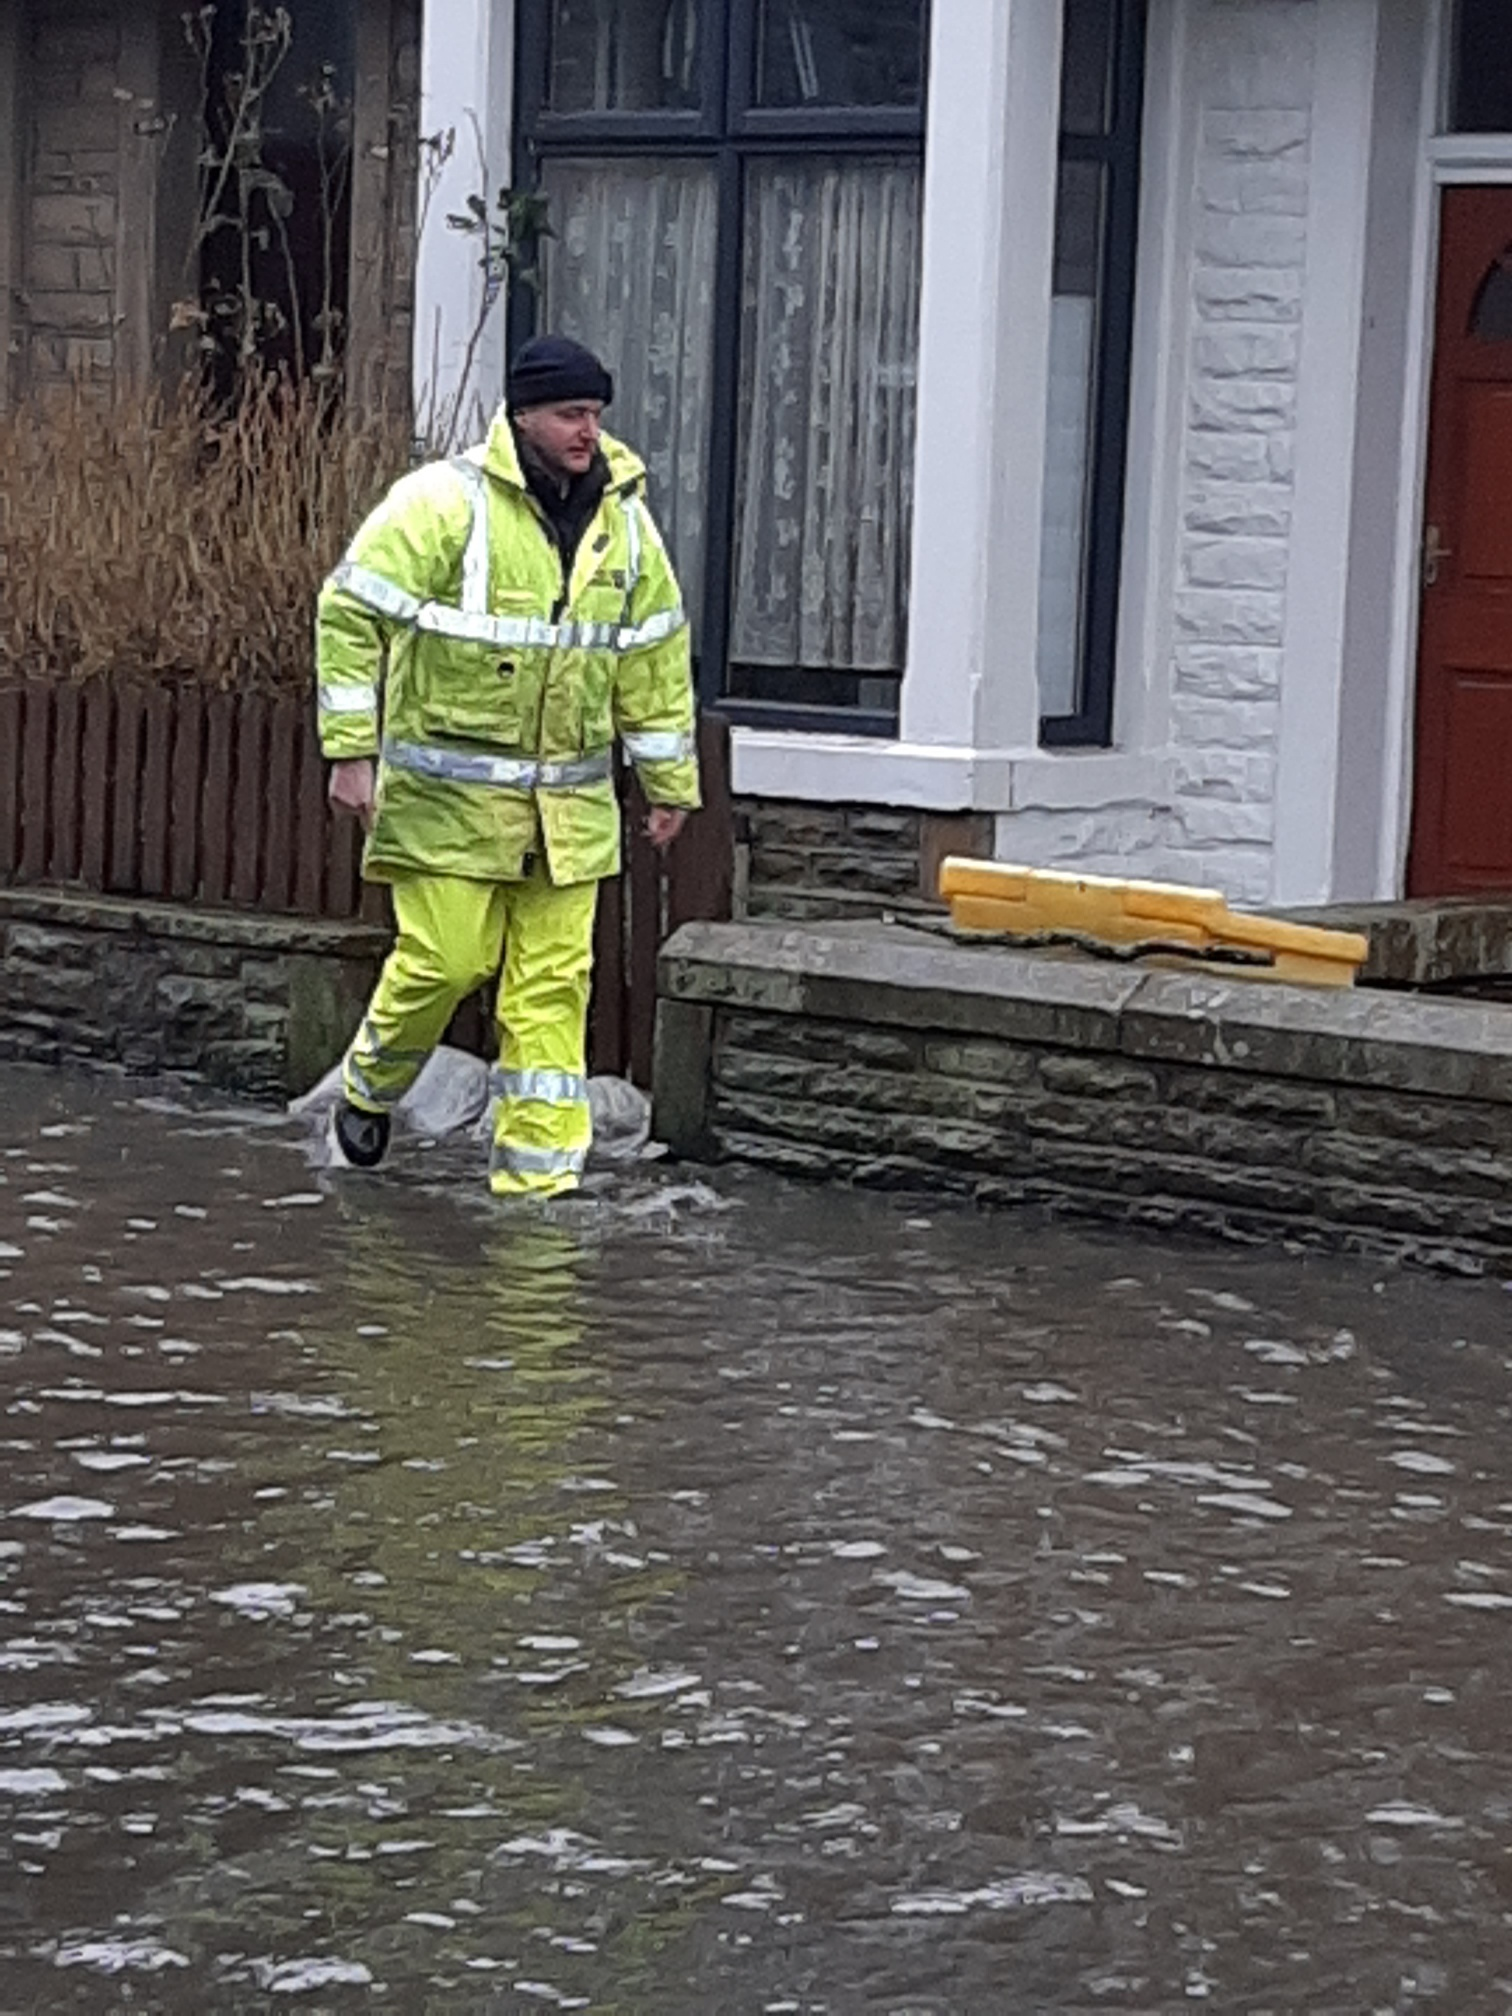 Storms, heavy rain and flooding in Pendle